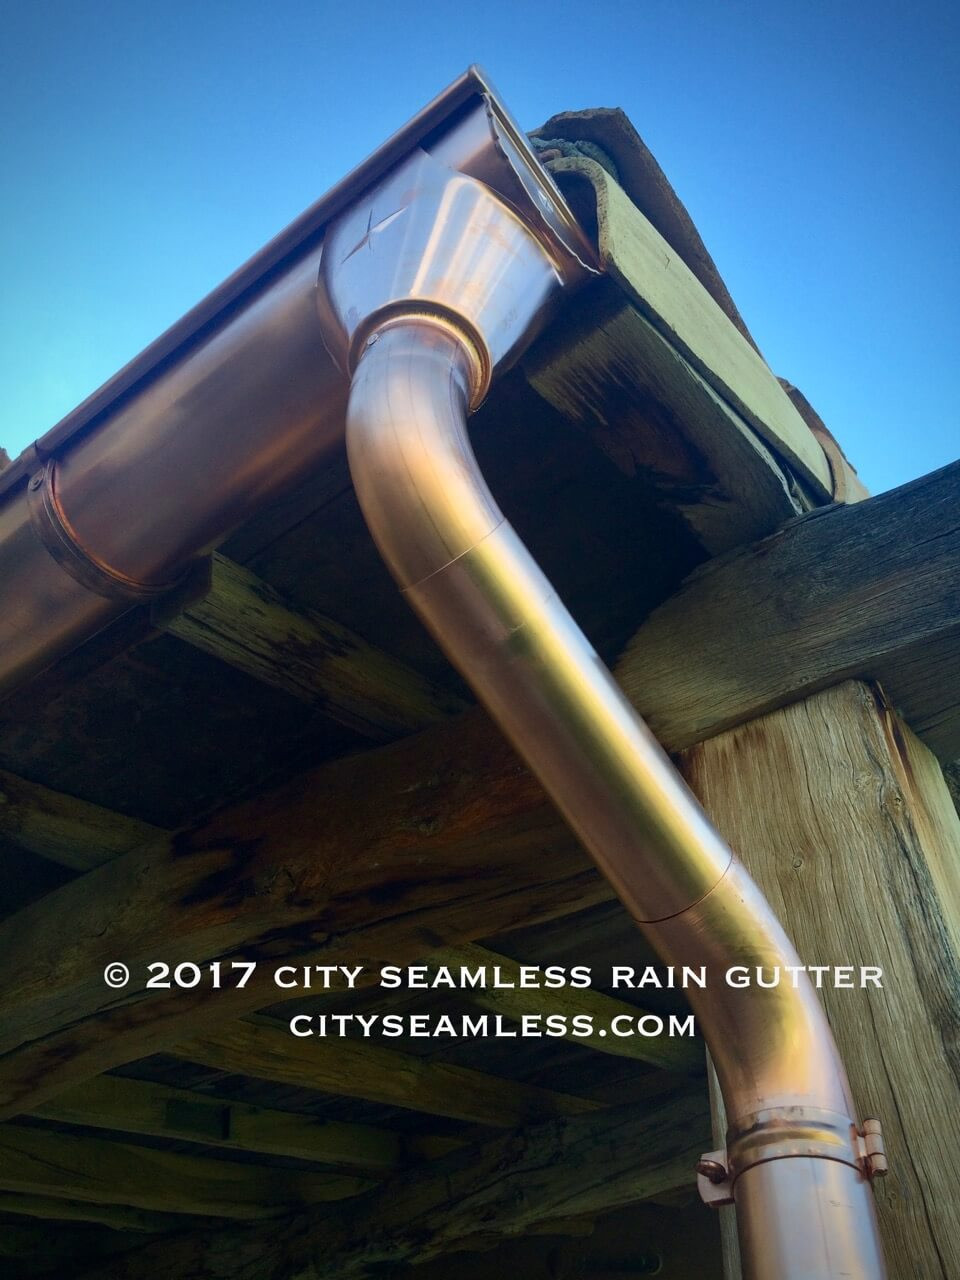 Local Gutter Company Your Local Seamless Gutter Experts